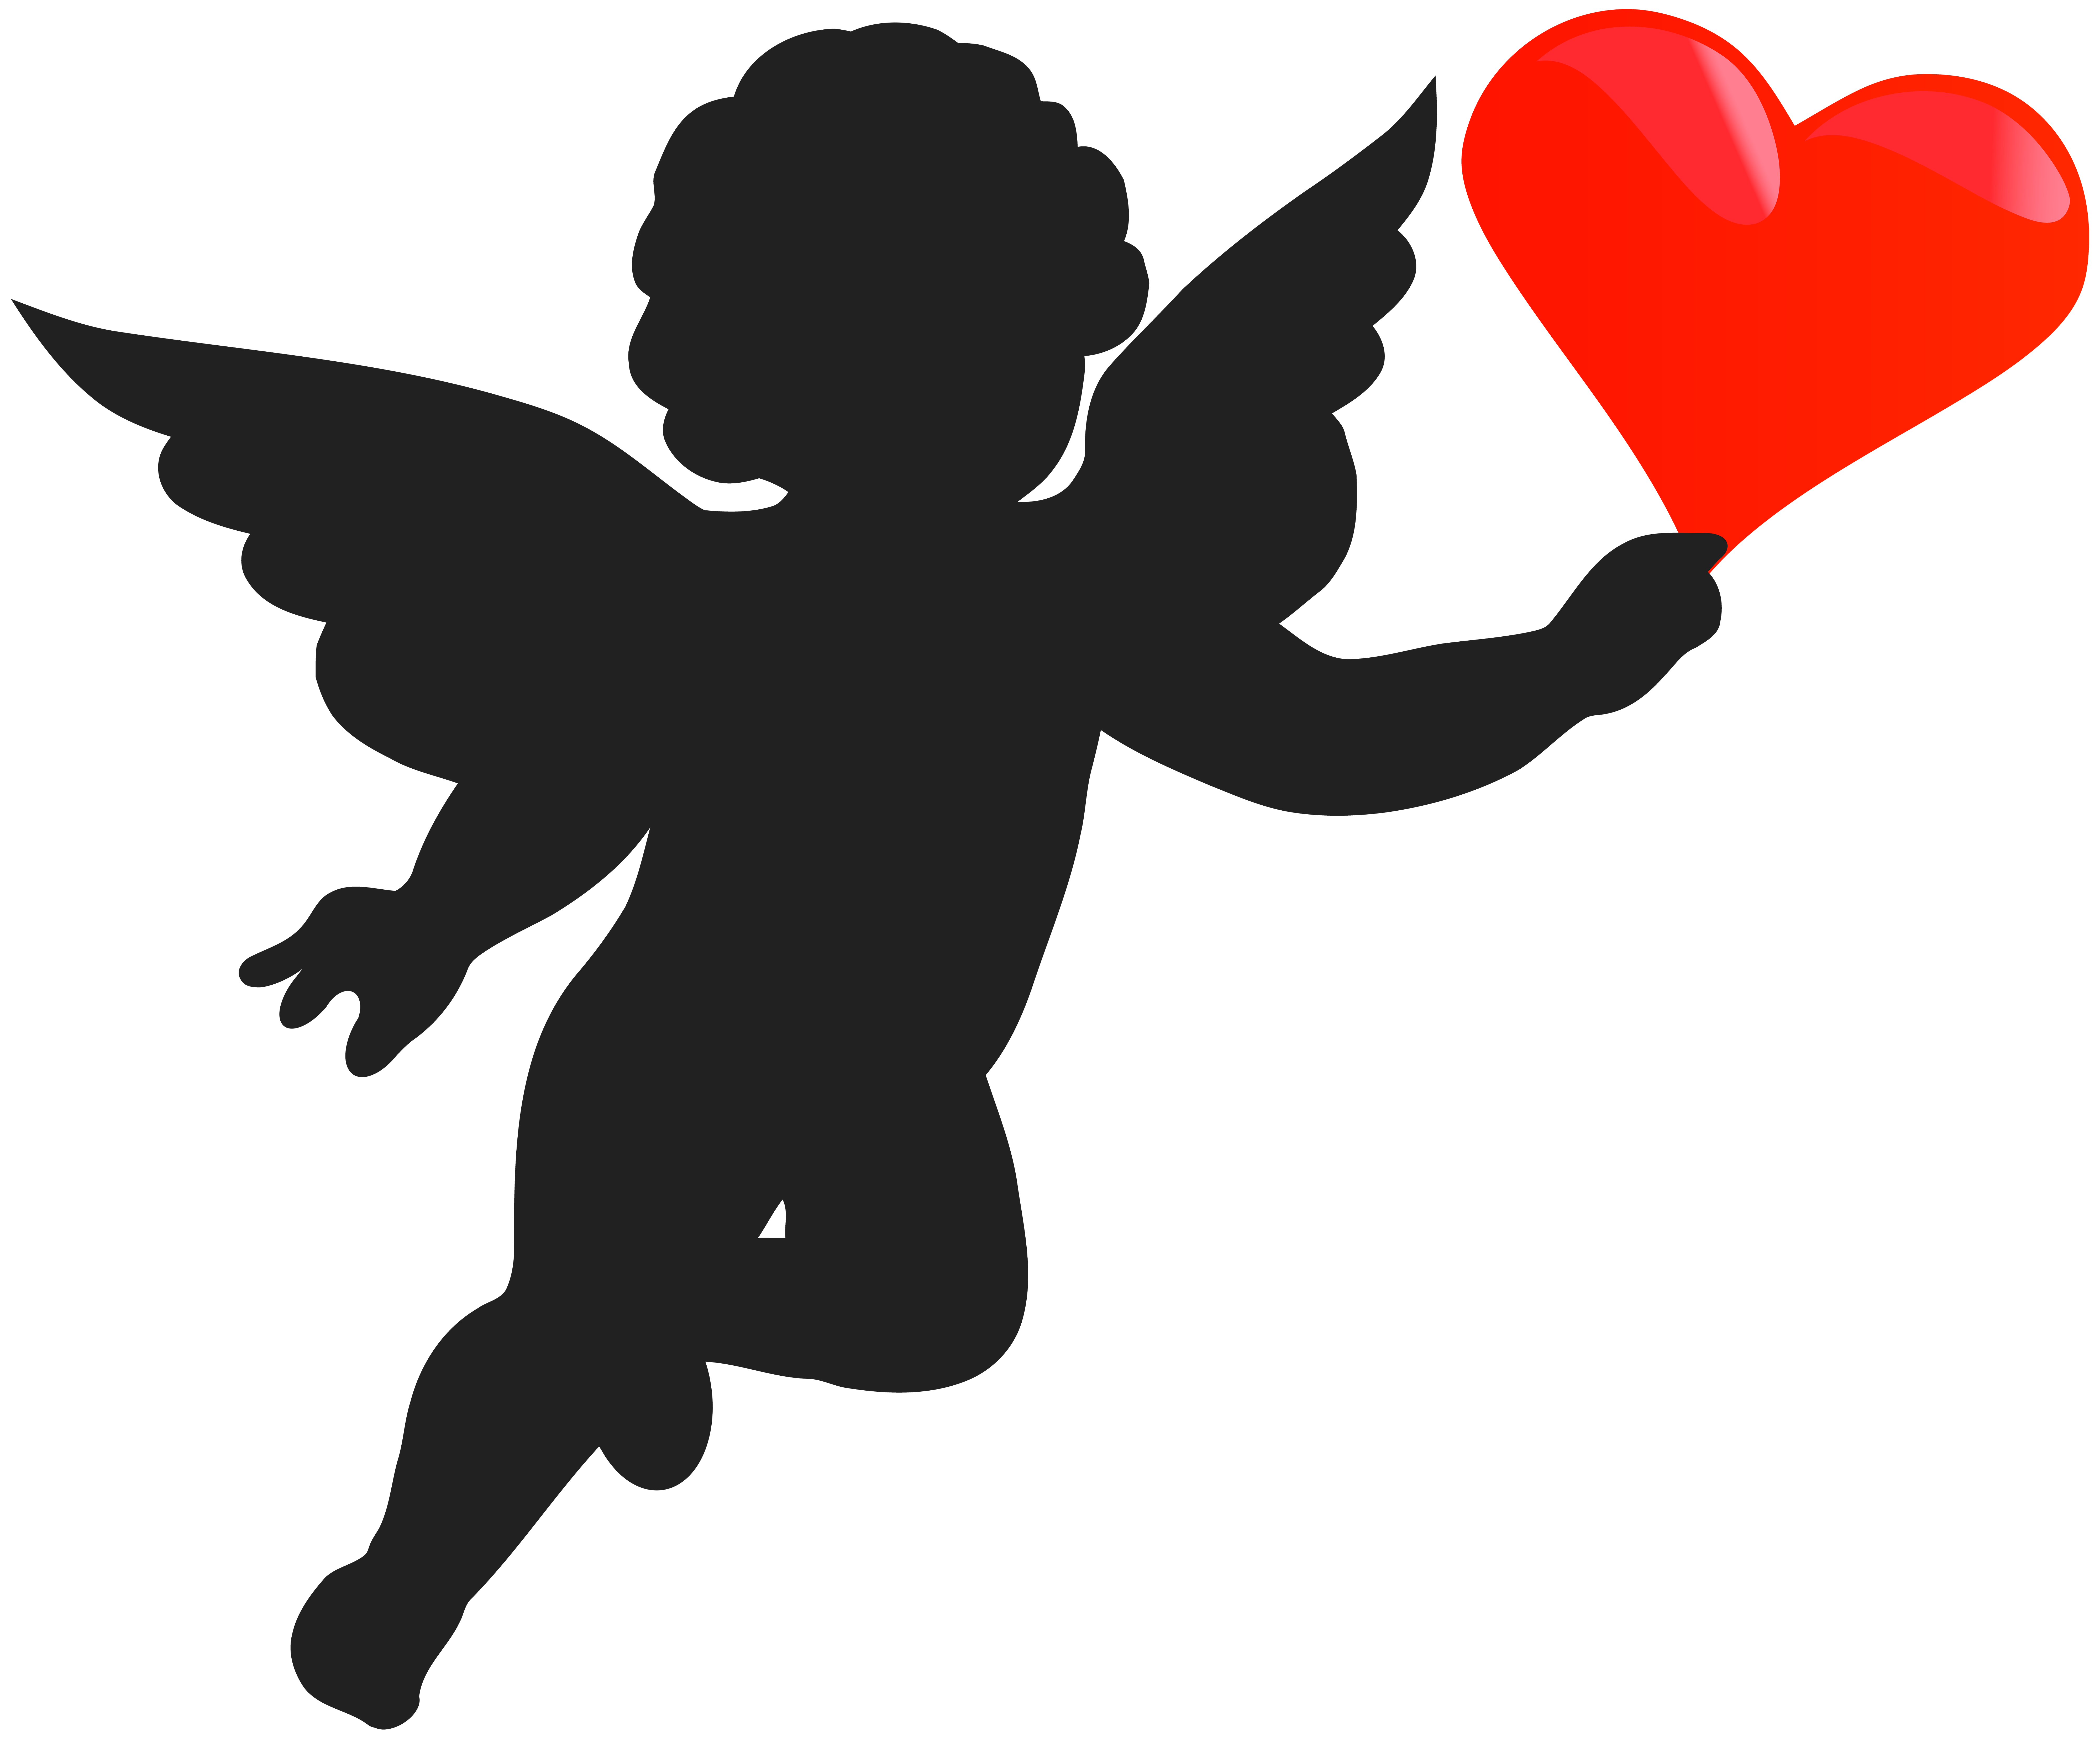 Banana Clip Art Black And White cupid heart clipart - ...